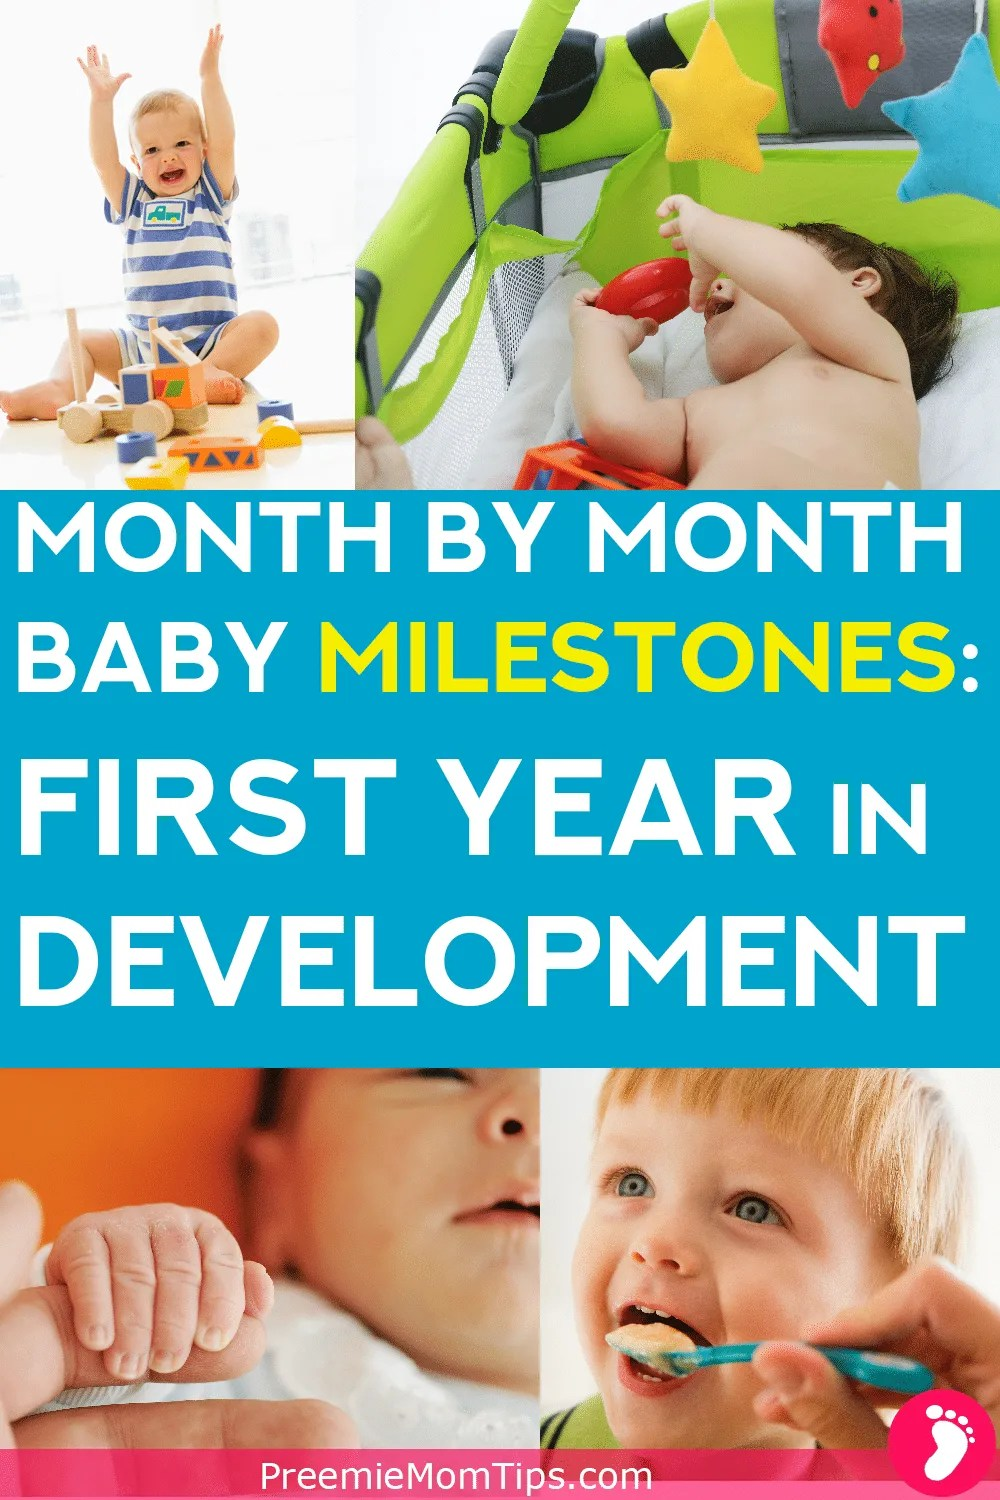 Keep your baby's development in check, from newborn to 12 months old, with this milestone development guide for new parents! Comes with a month by month printable milestone checklist.